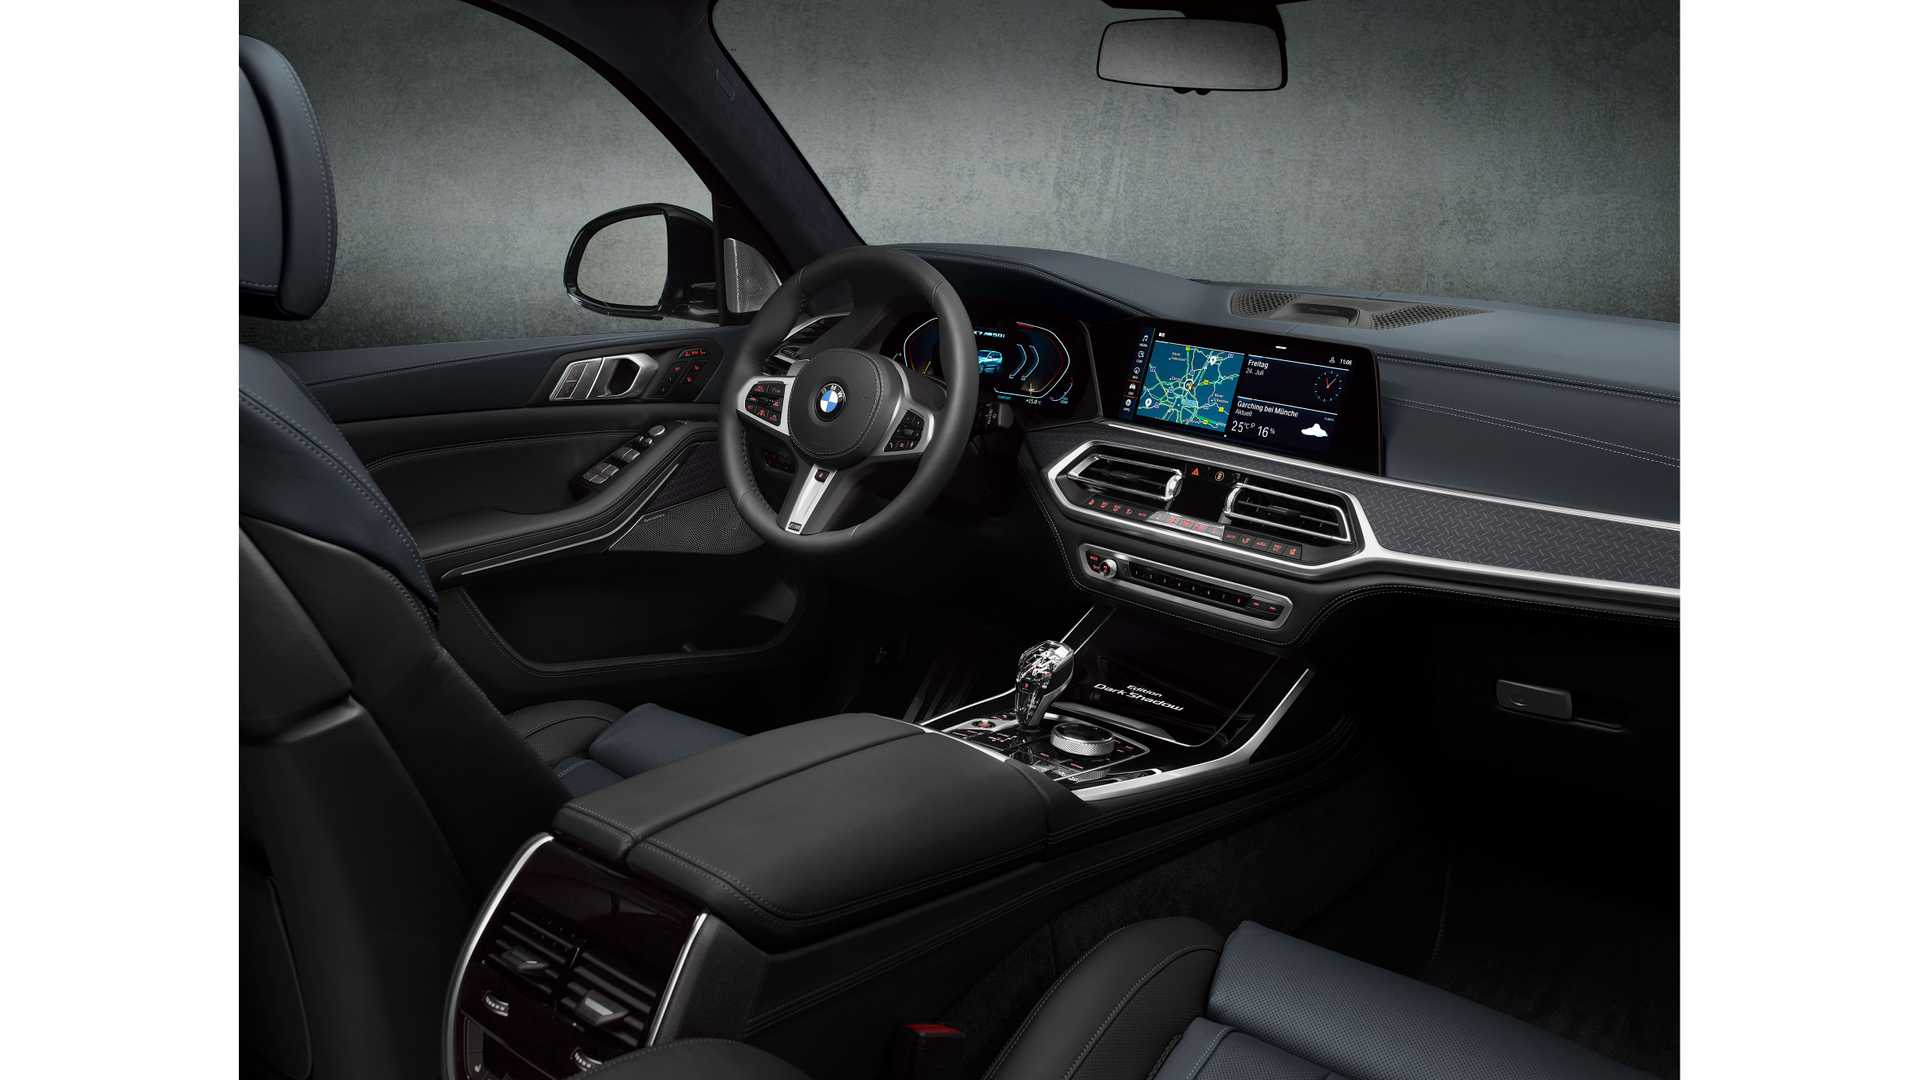 2021-bmw-x7-dark-shadow-edition-interior.jpg